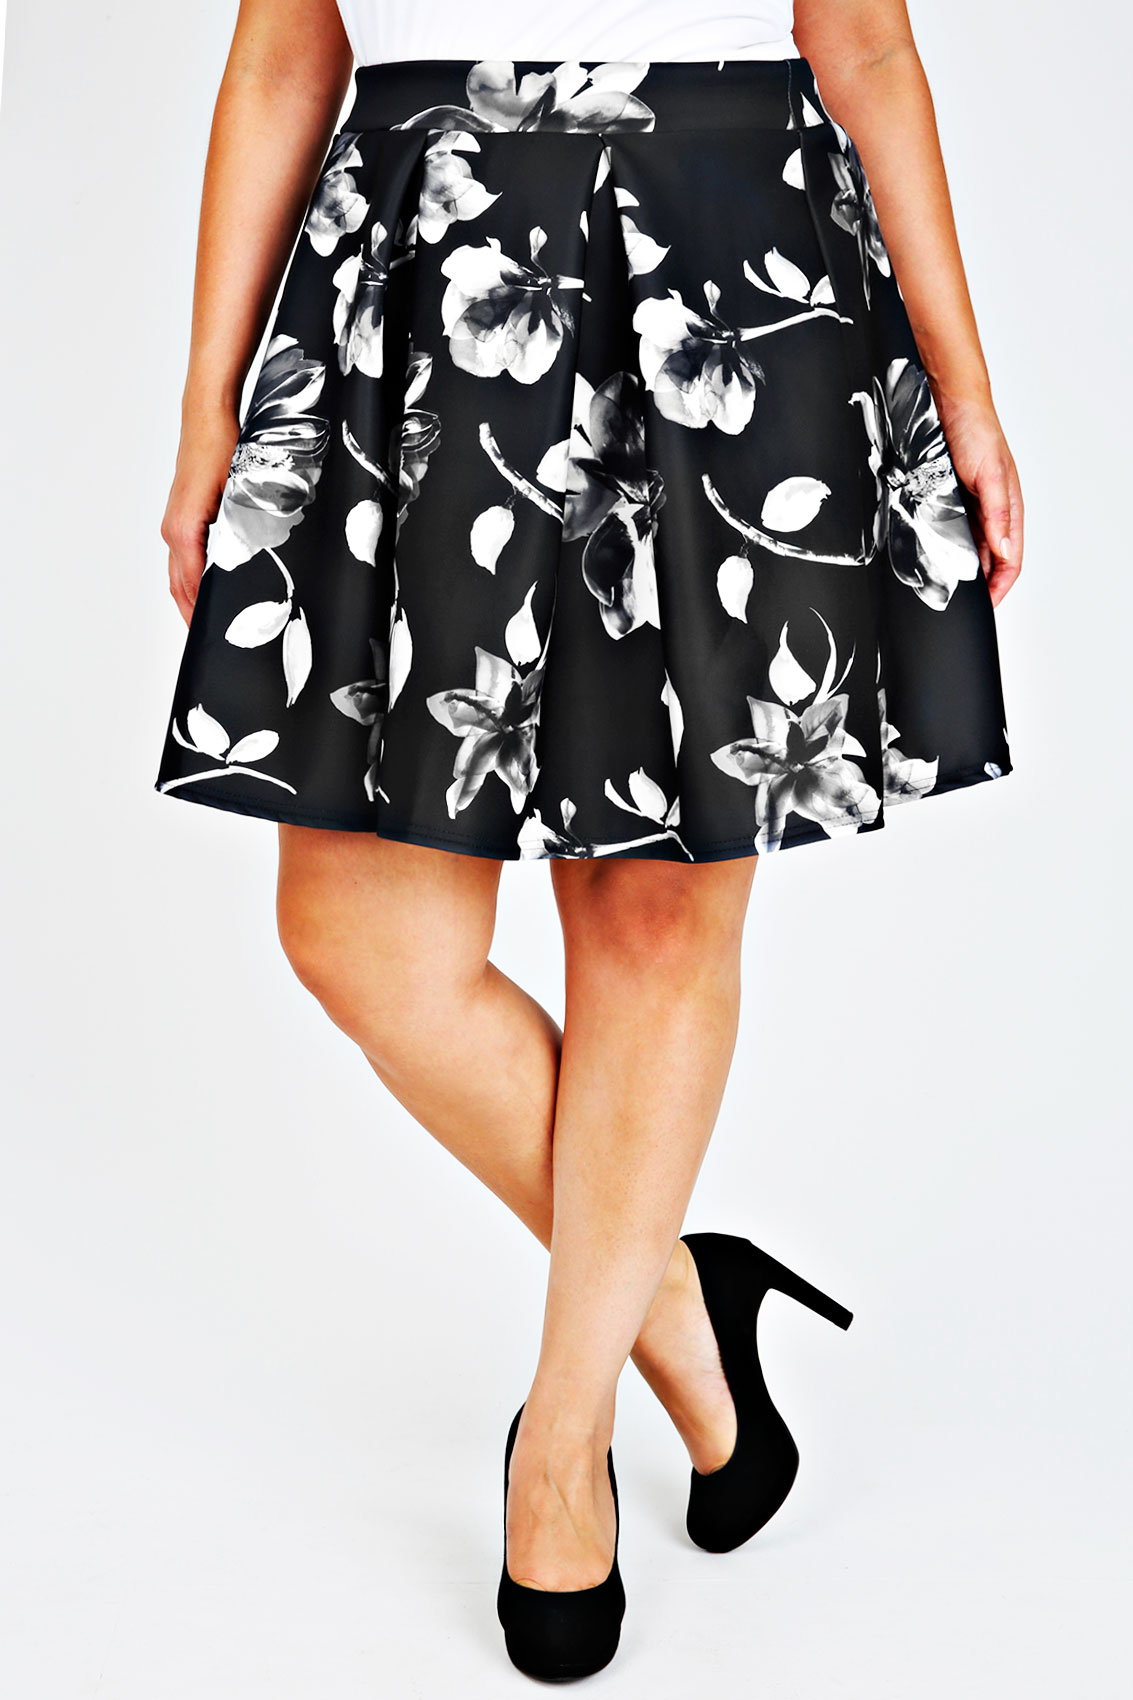 Shop for black floral skirt online at Target. Free shipping on purchases over $35 Expect More. Pay Less.· Everyday Savings· Free Shipping $35+· Free Returns/10 (49K reviews).